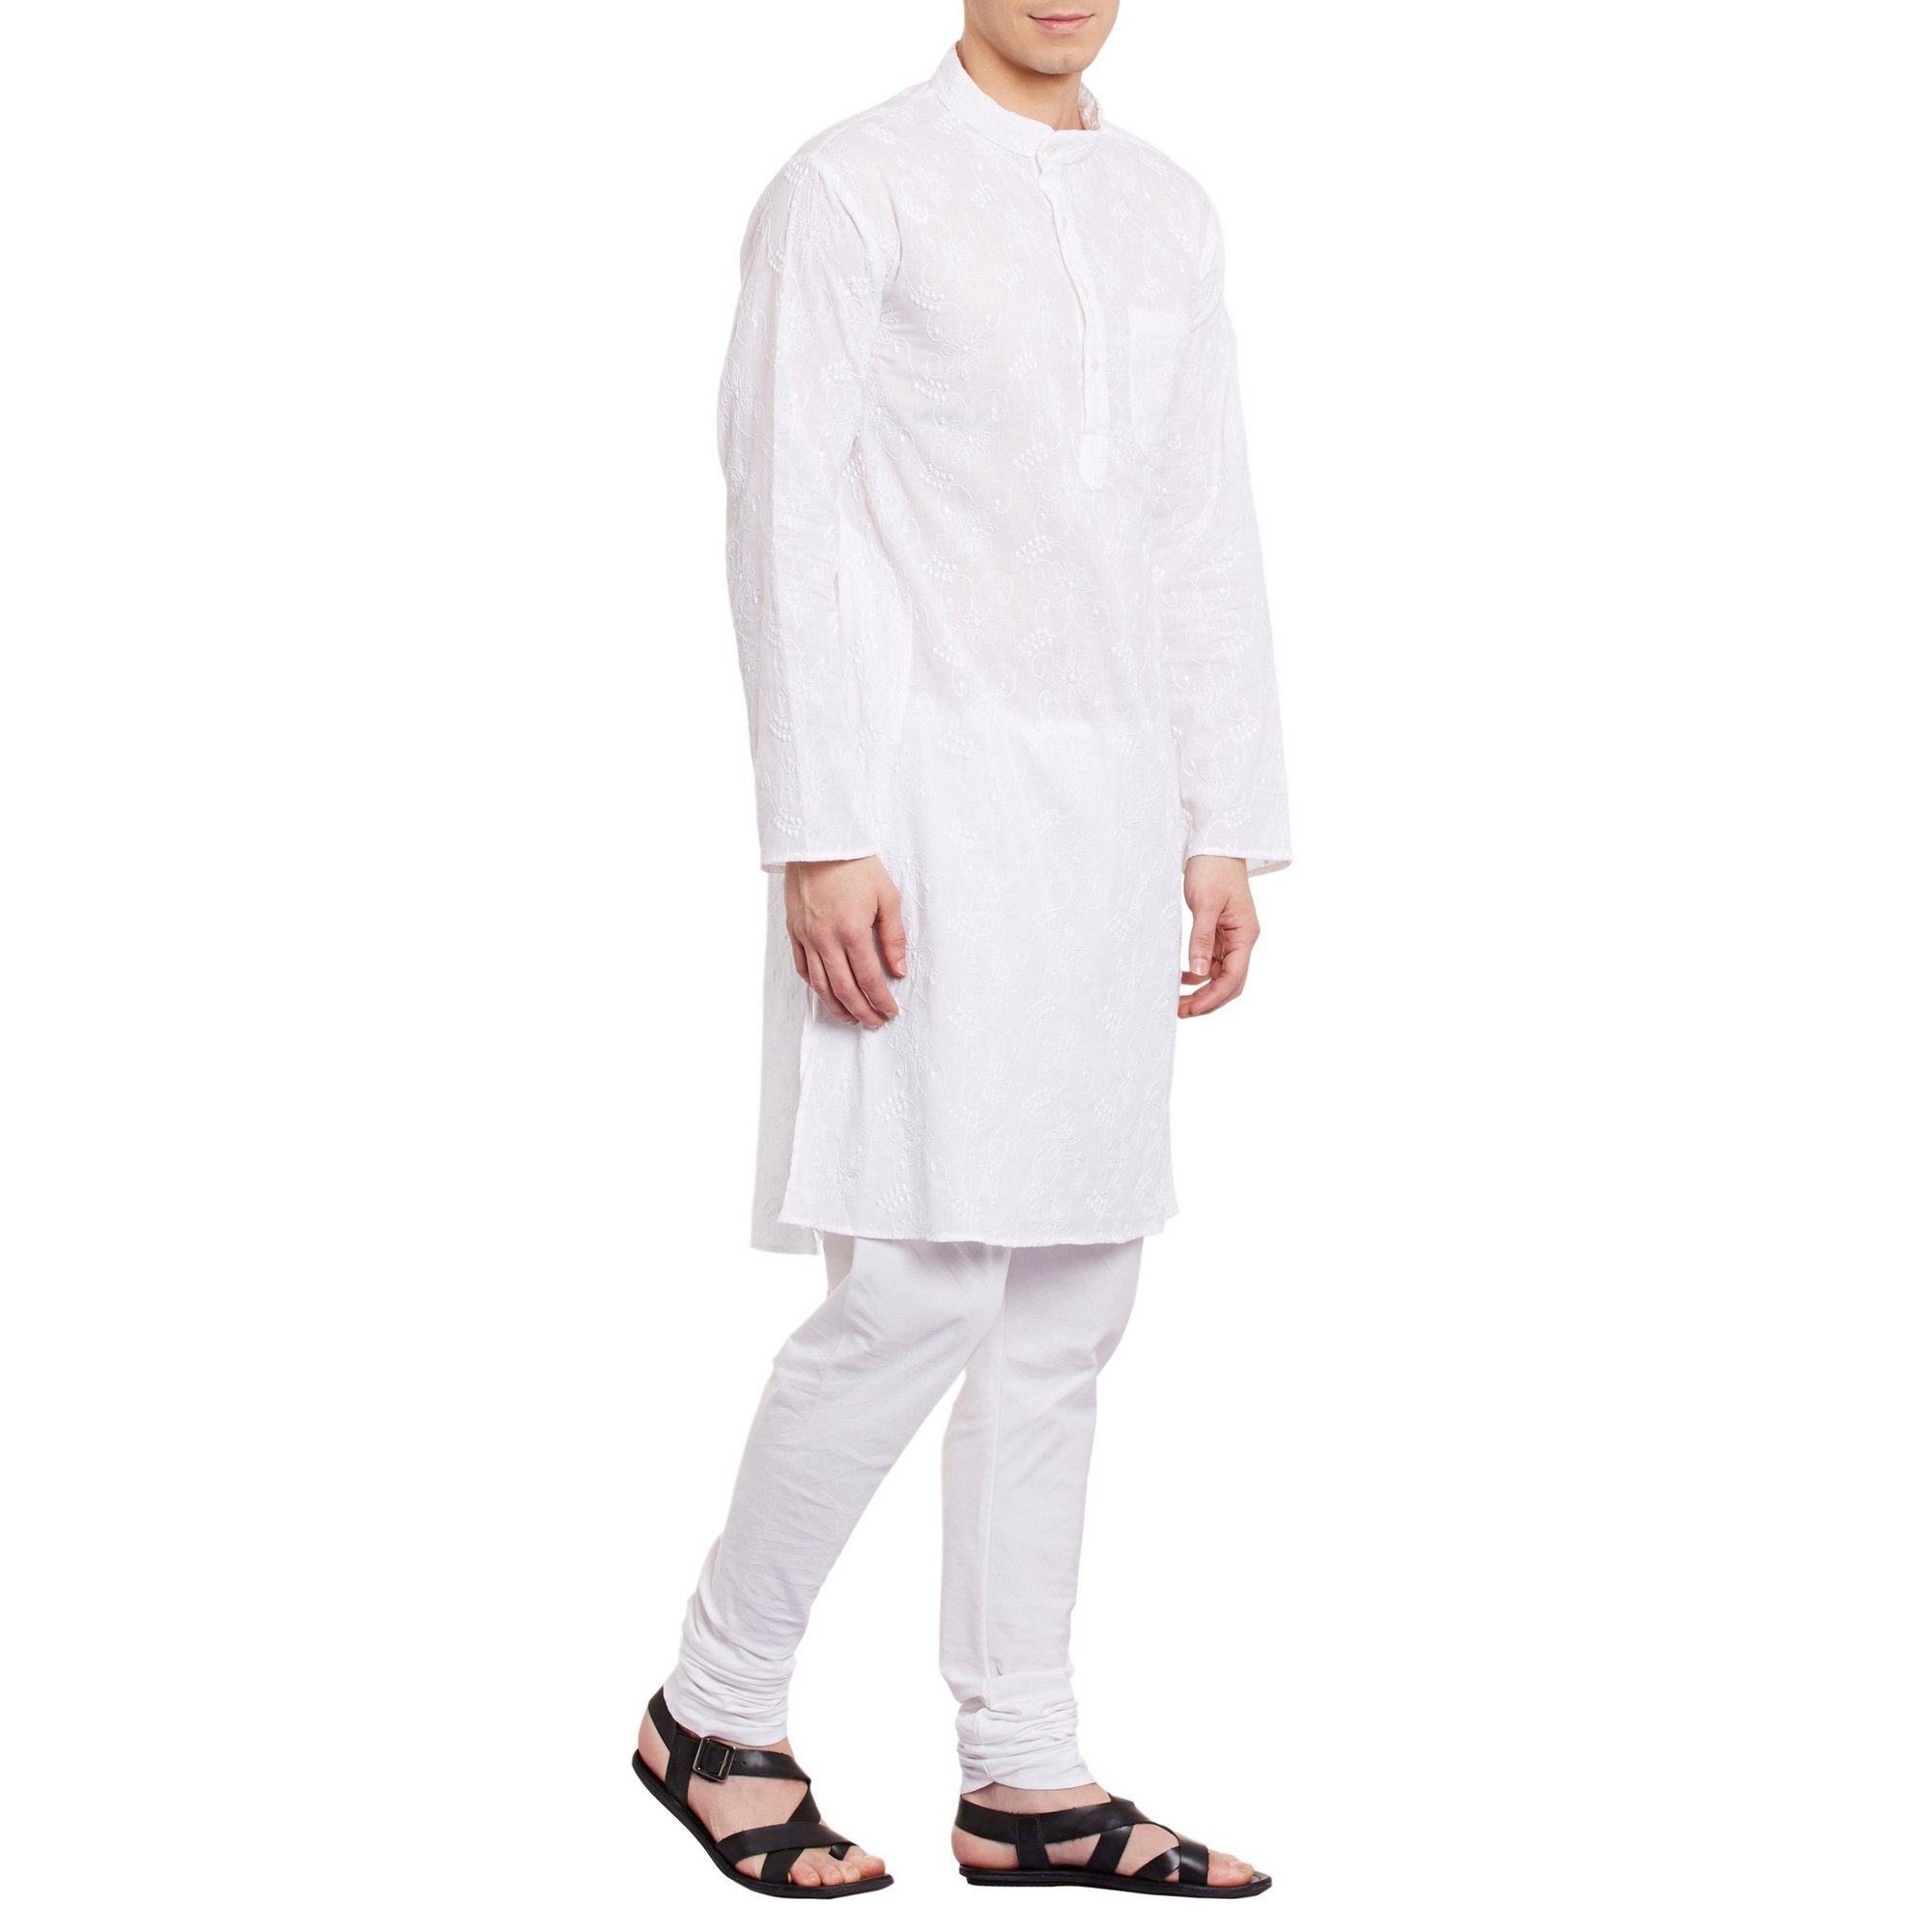 ShalinIndia Mens Embroidered Cutwork Cotton Kurta With Churidar Pajama Trousers Machine Embroidery,White Chest Size: 42 Inch by ShalinIndia (Image #4)